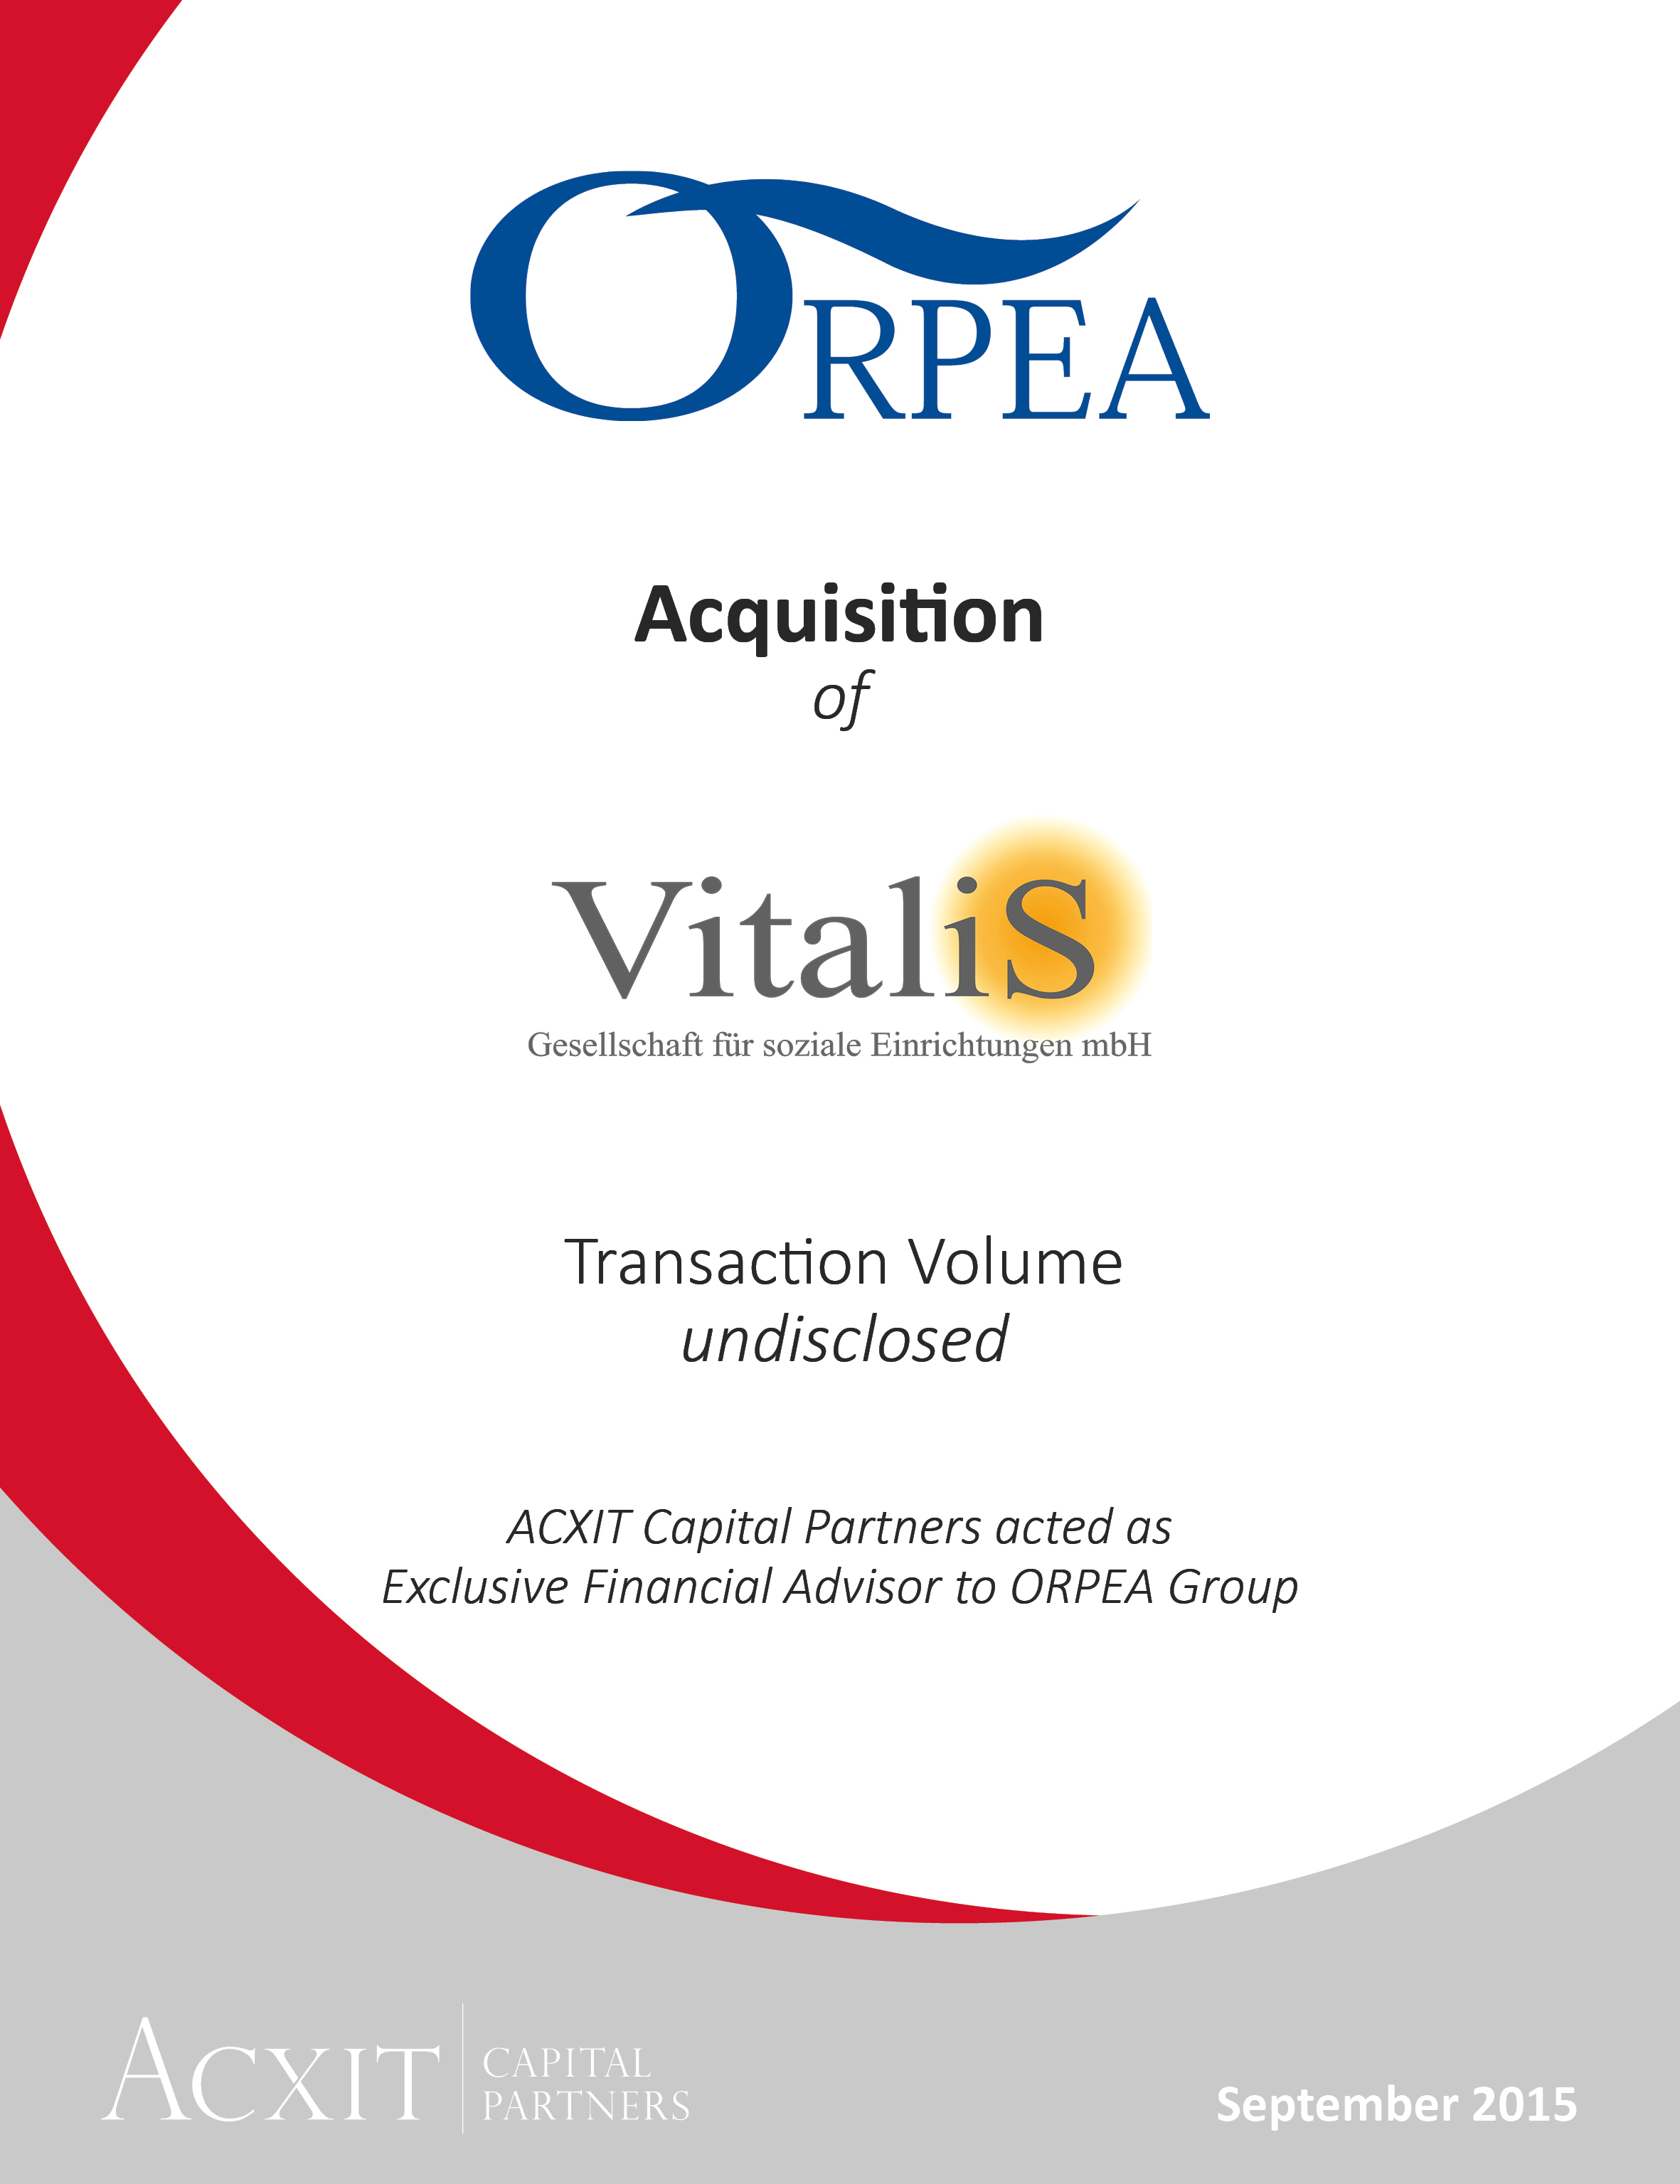 Acquisition of Vitalis Group by ORPEA